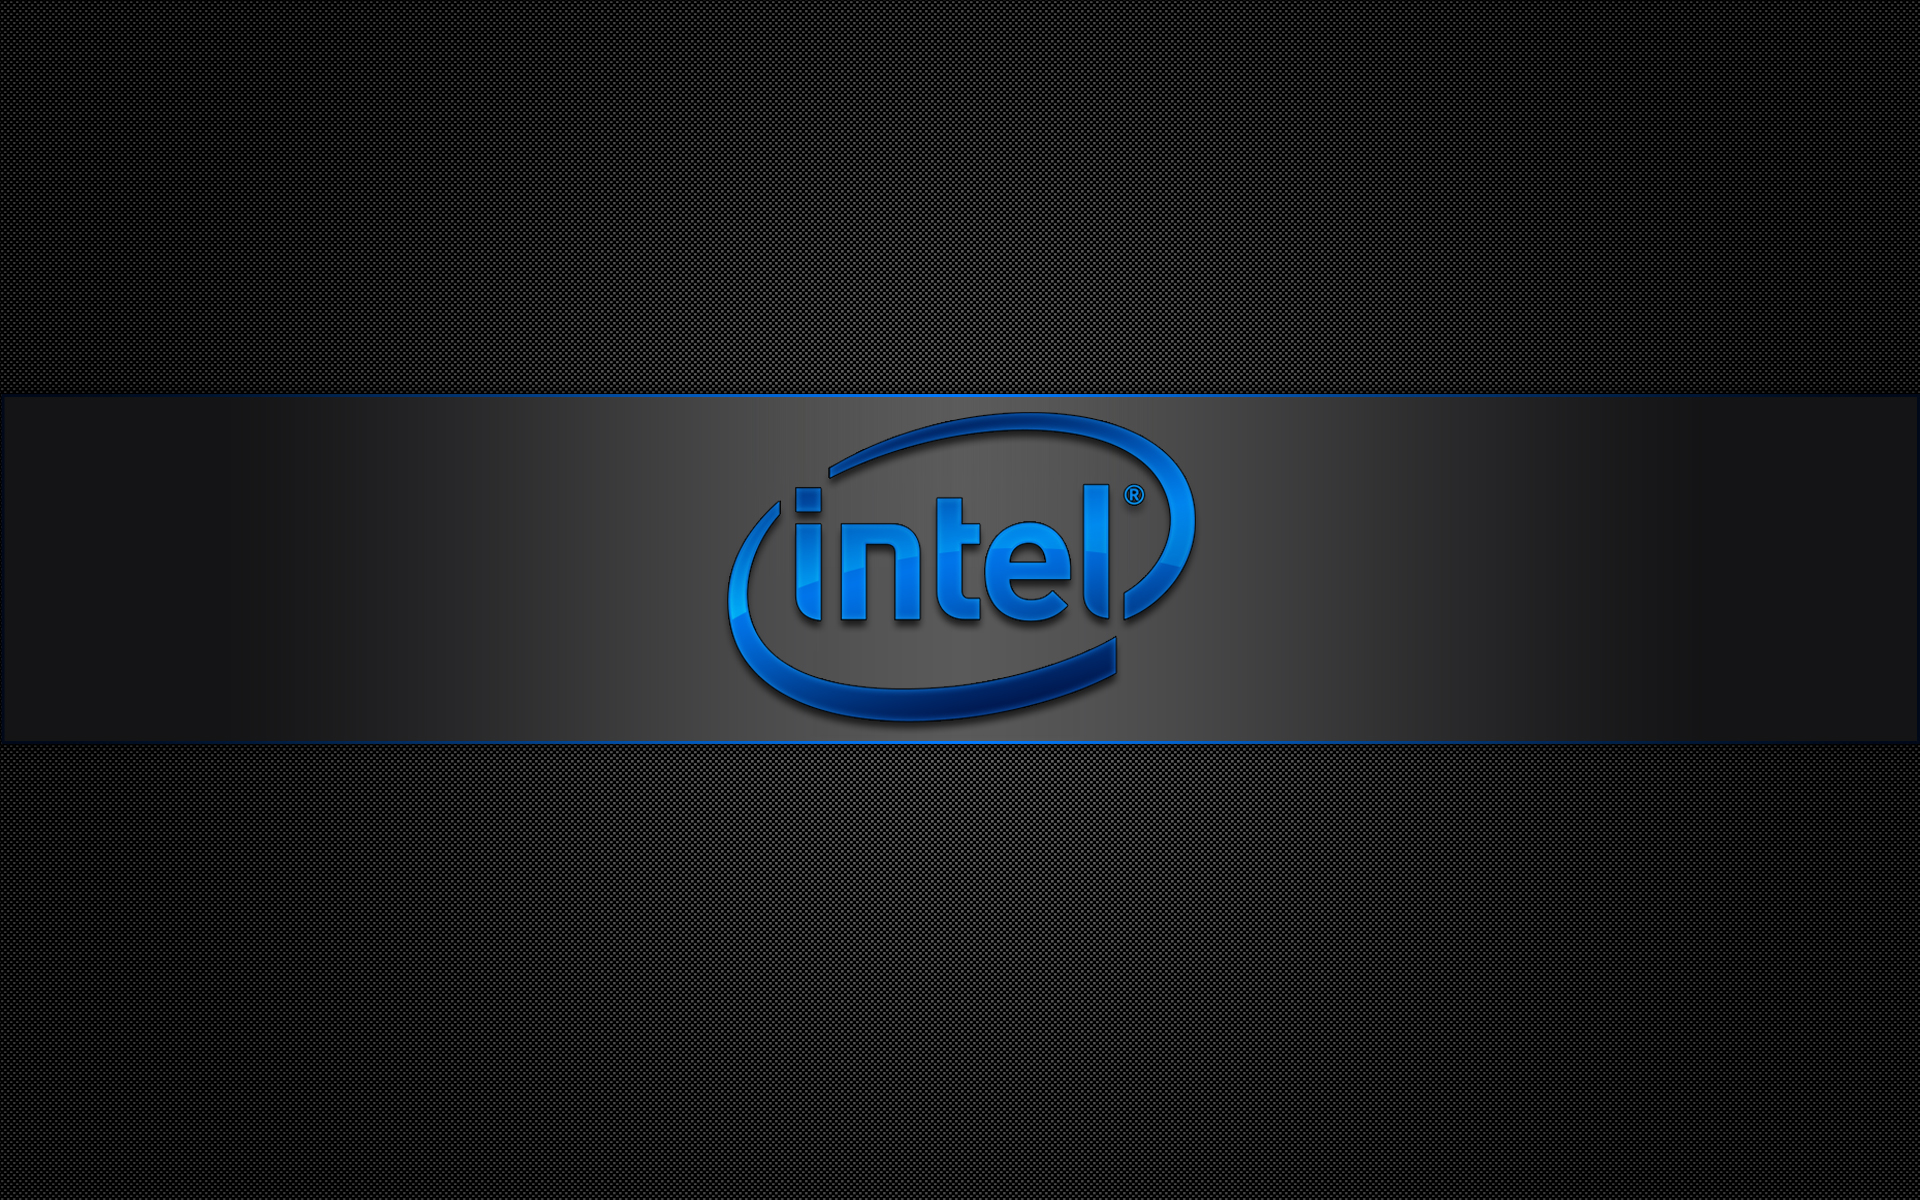 intel_by_mullet-d39ov86.jpg